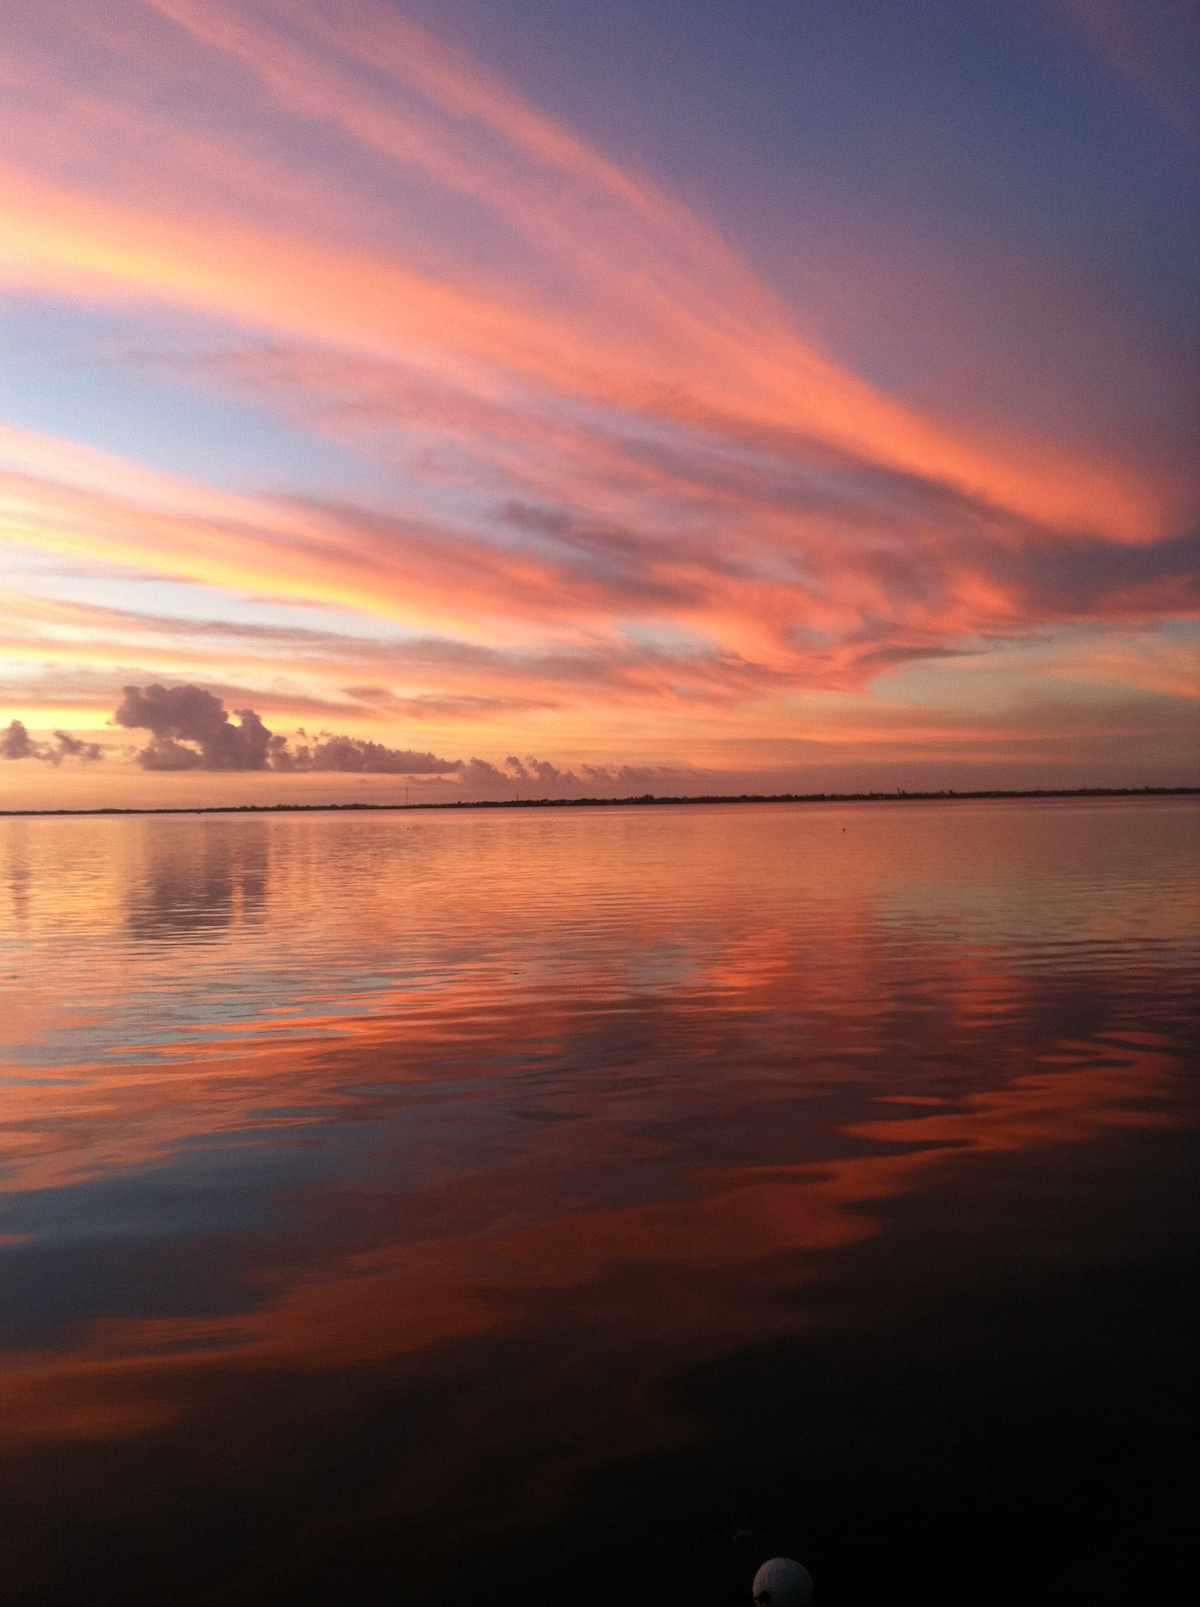 No its not photo shopped..taken right from our dock